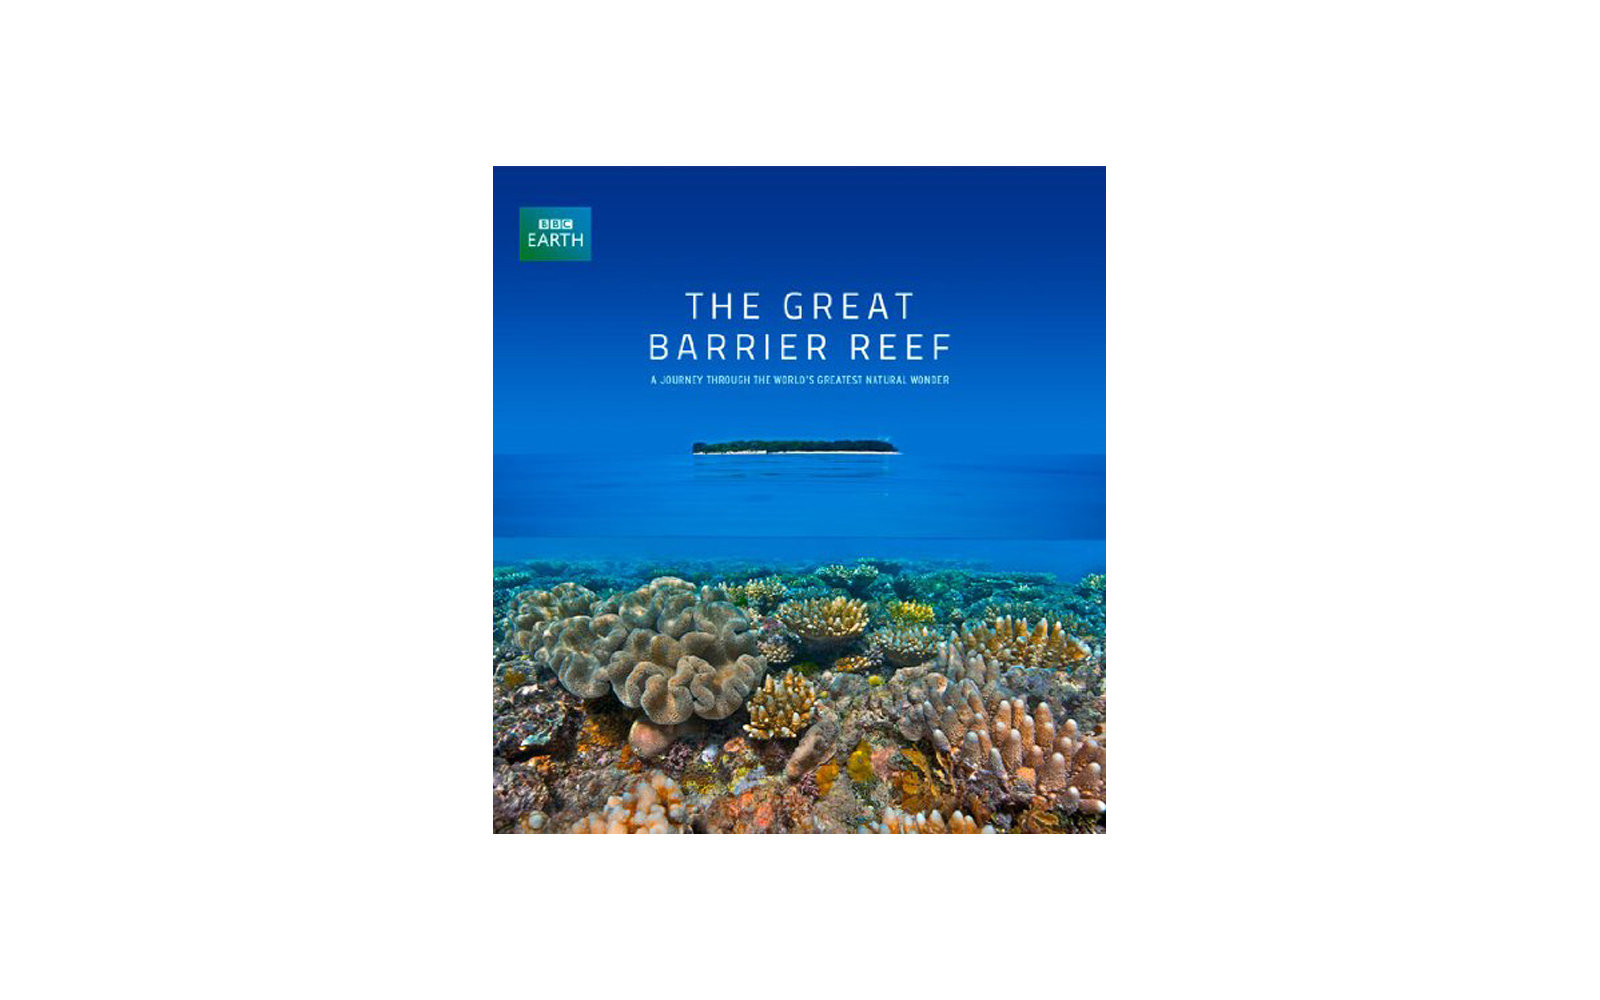 The Great Barrier Reef, a Journey through the World's Greatest Natural Wonder, Book